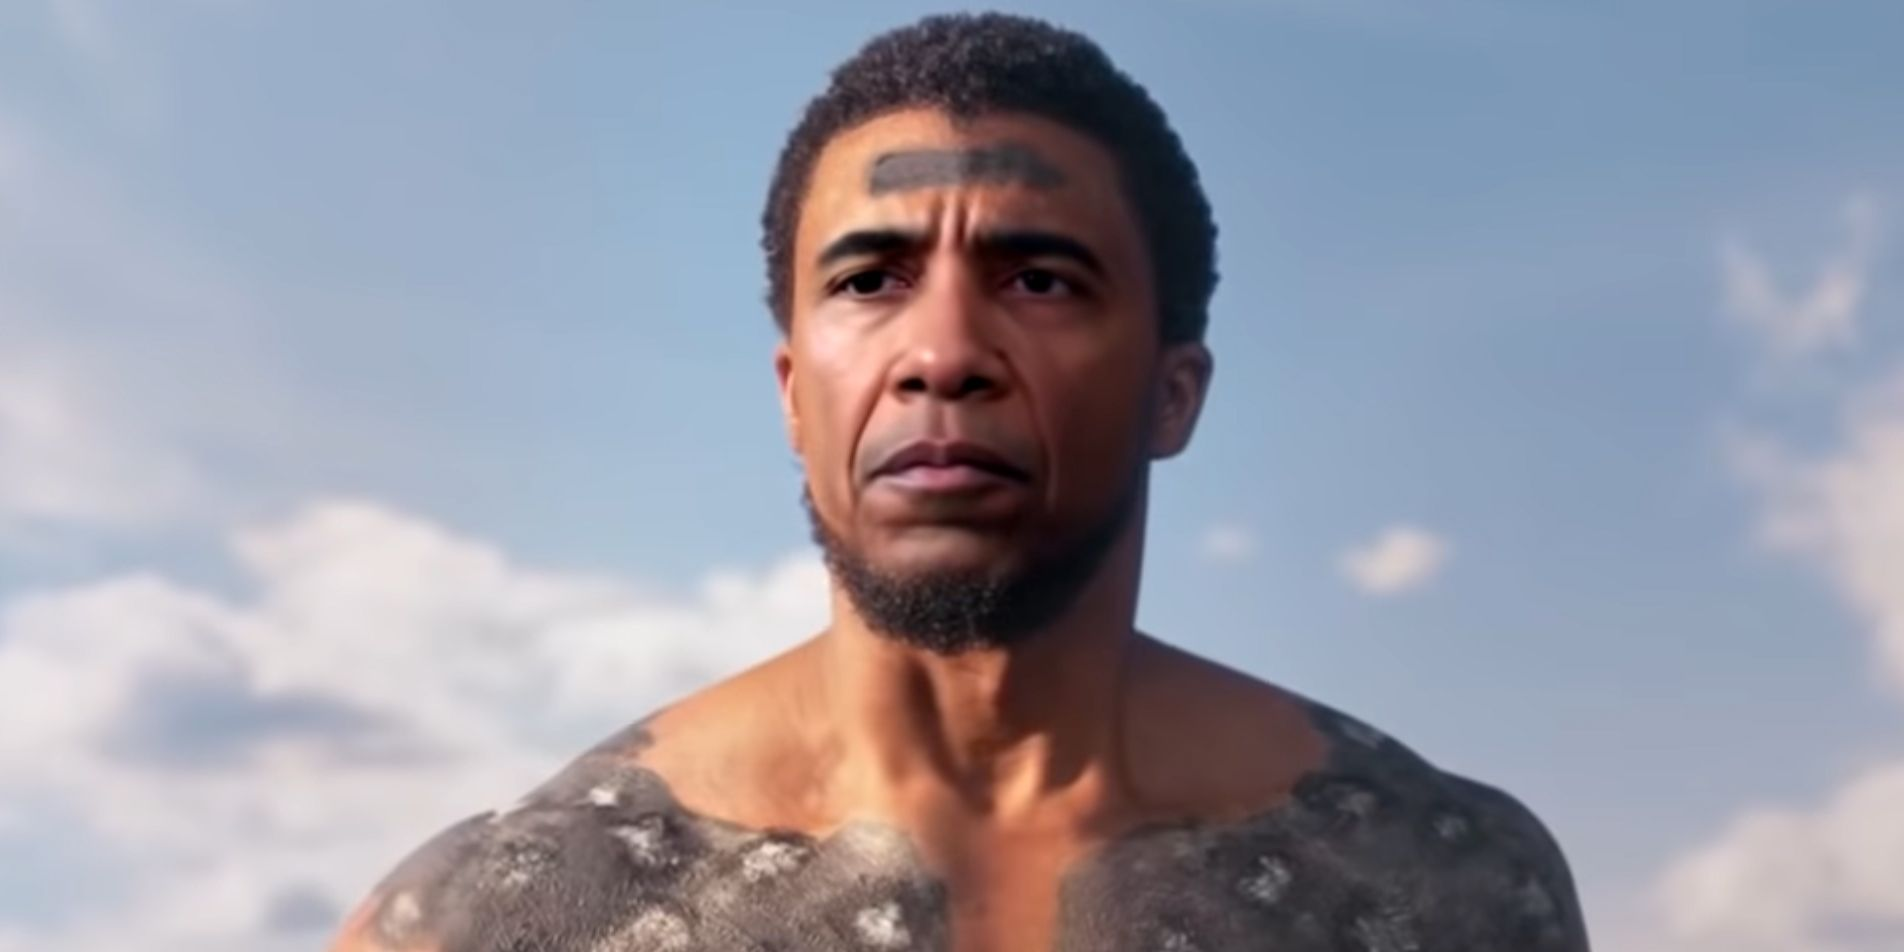 Black Panther Deep Fake Trailer Recasts Barack Obama as T'Challa